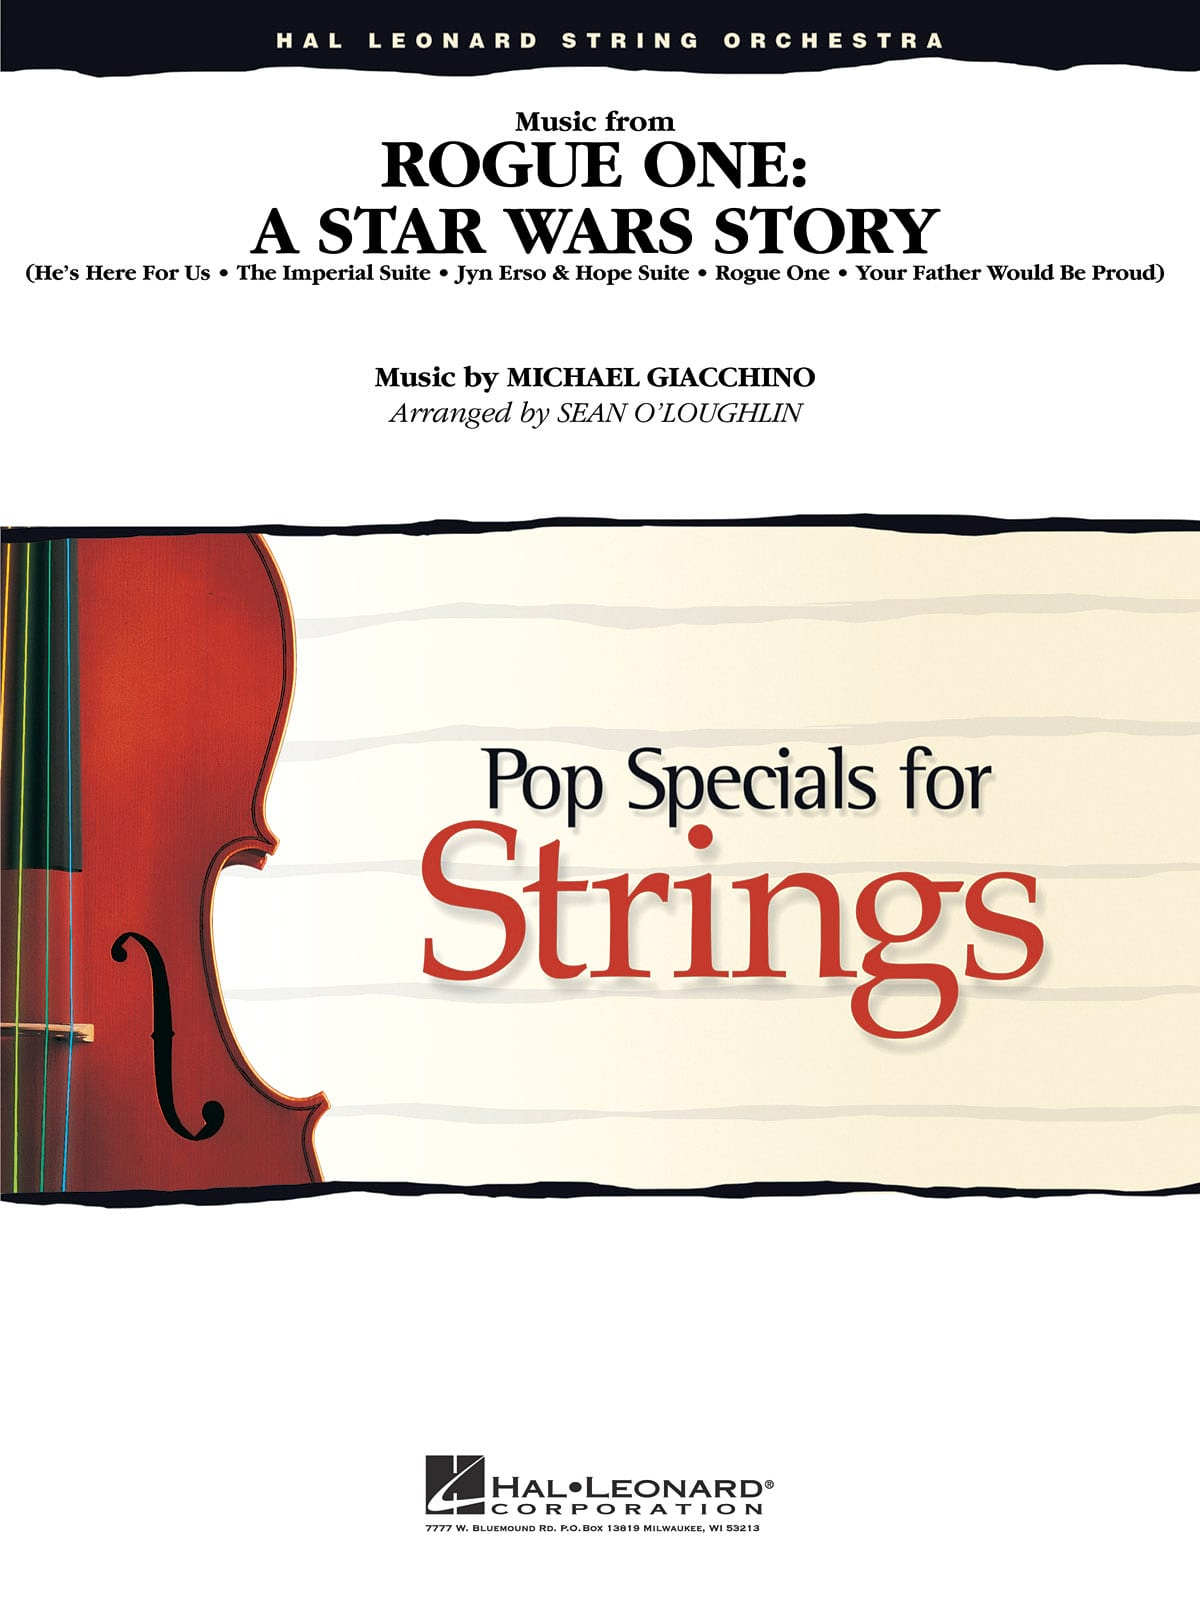 Rogue One: A Star Wars Story (Music from) - Pop Specials for Strings - laflutedepan.com